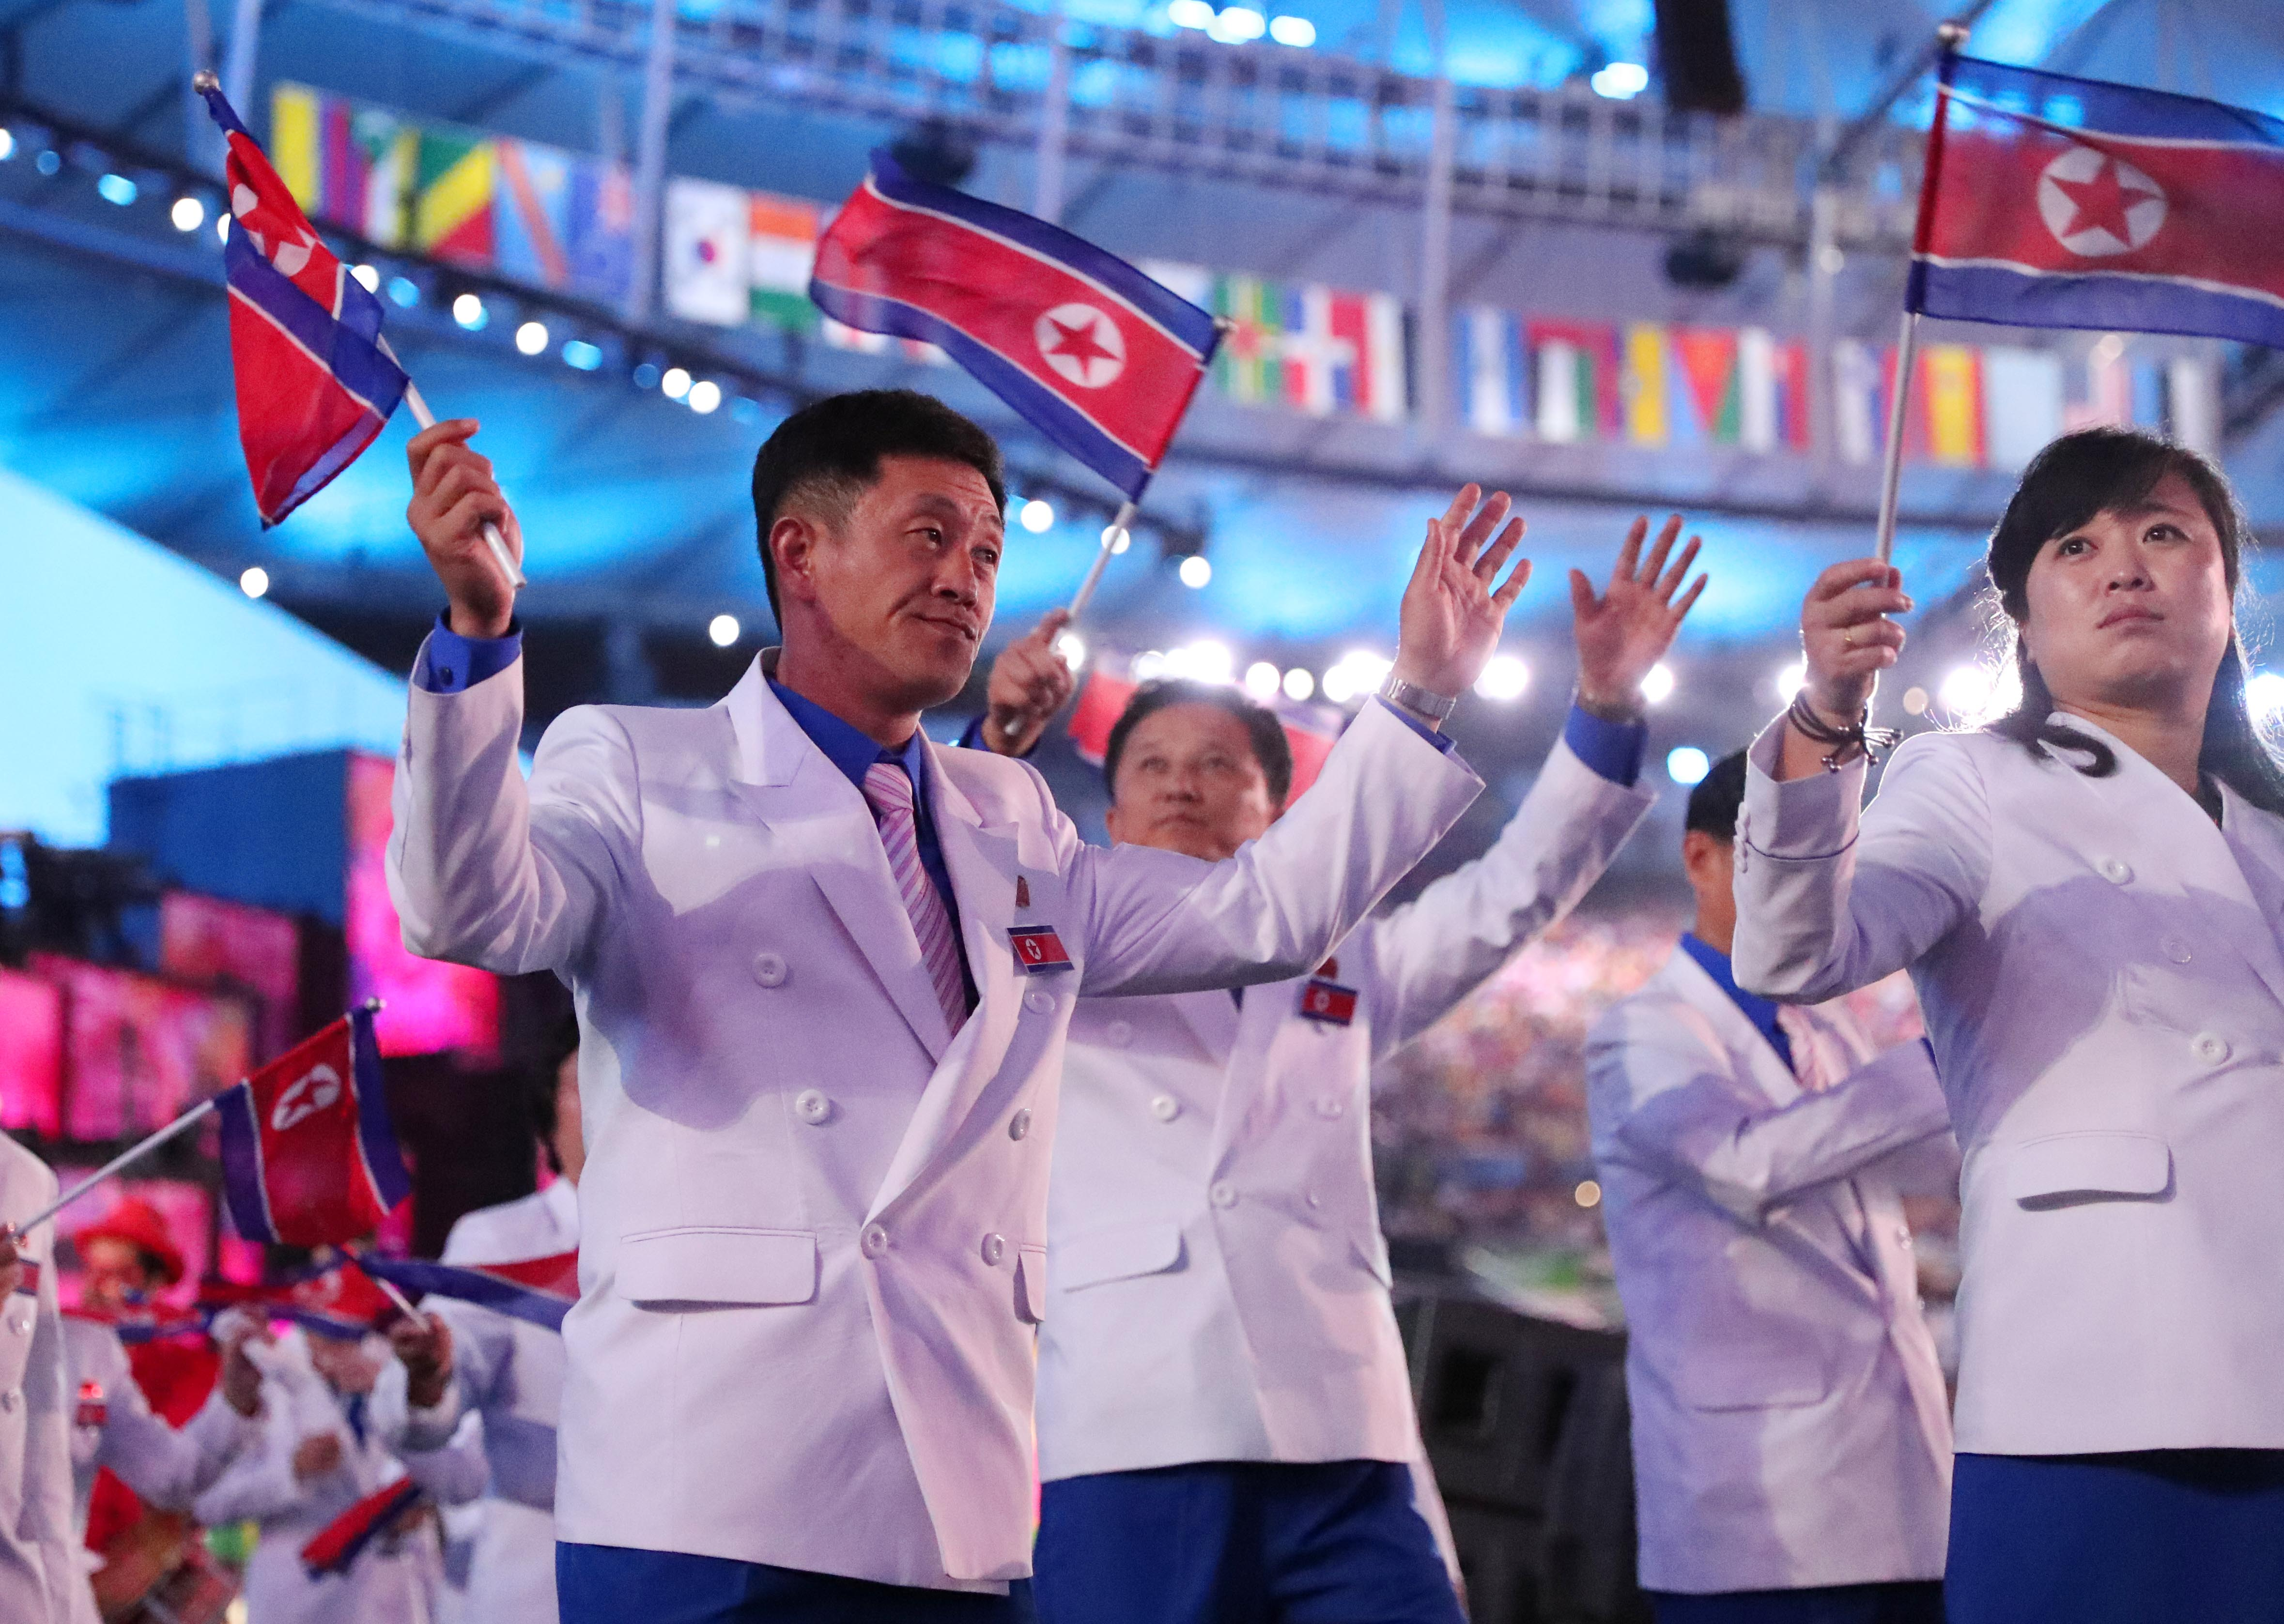 pyeongchang 2018 what are north korea s cheerleaders 2